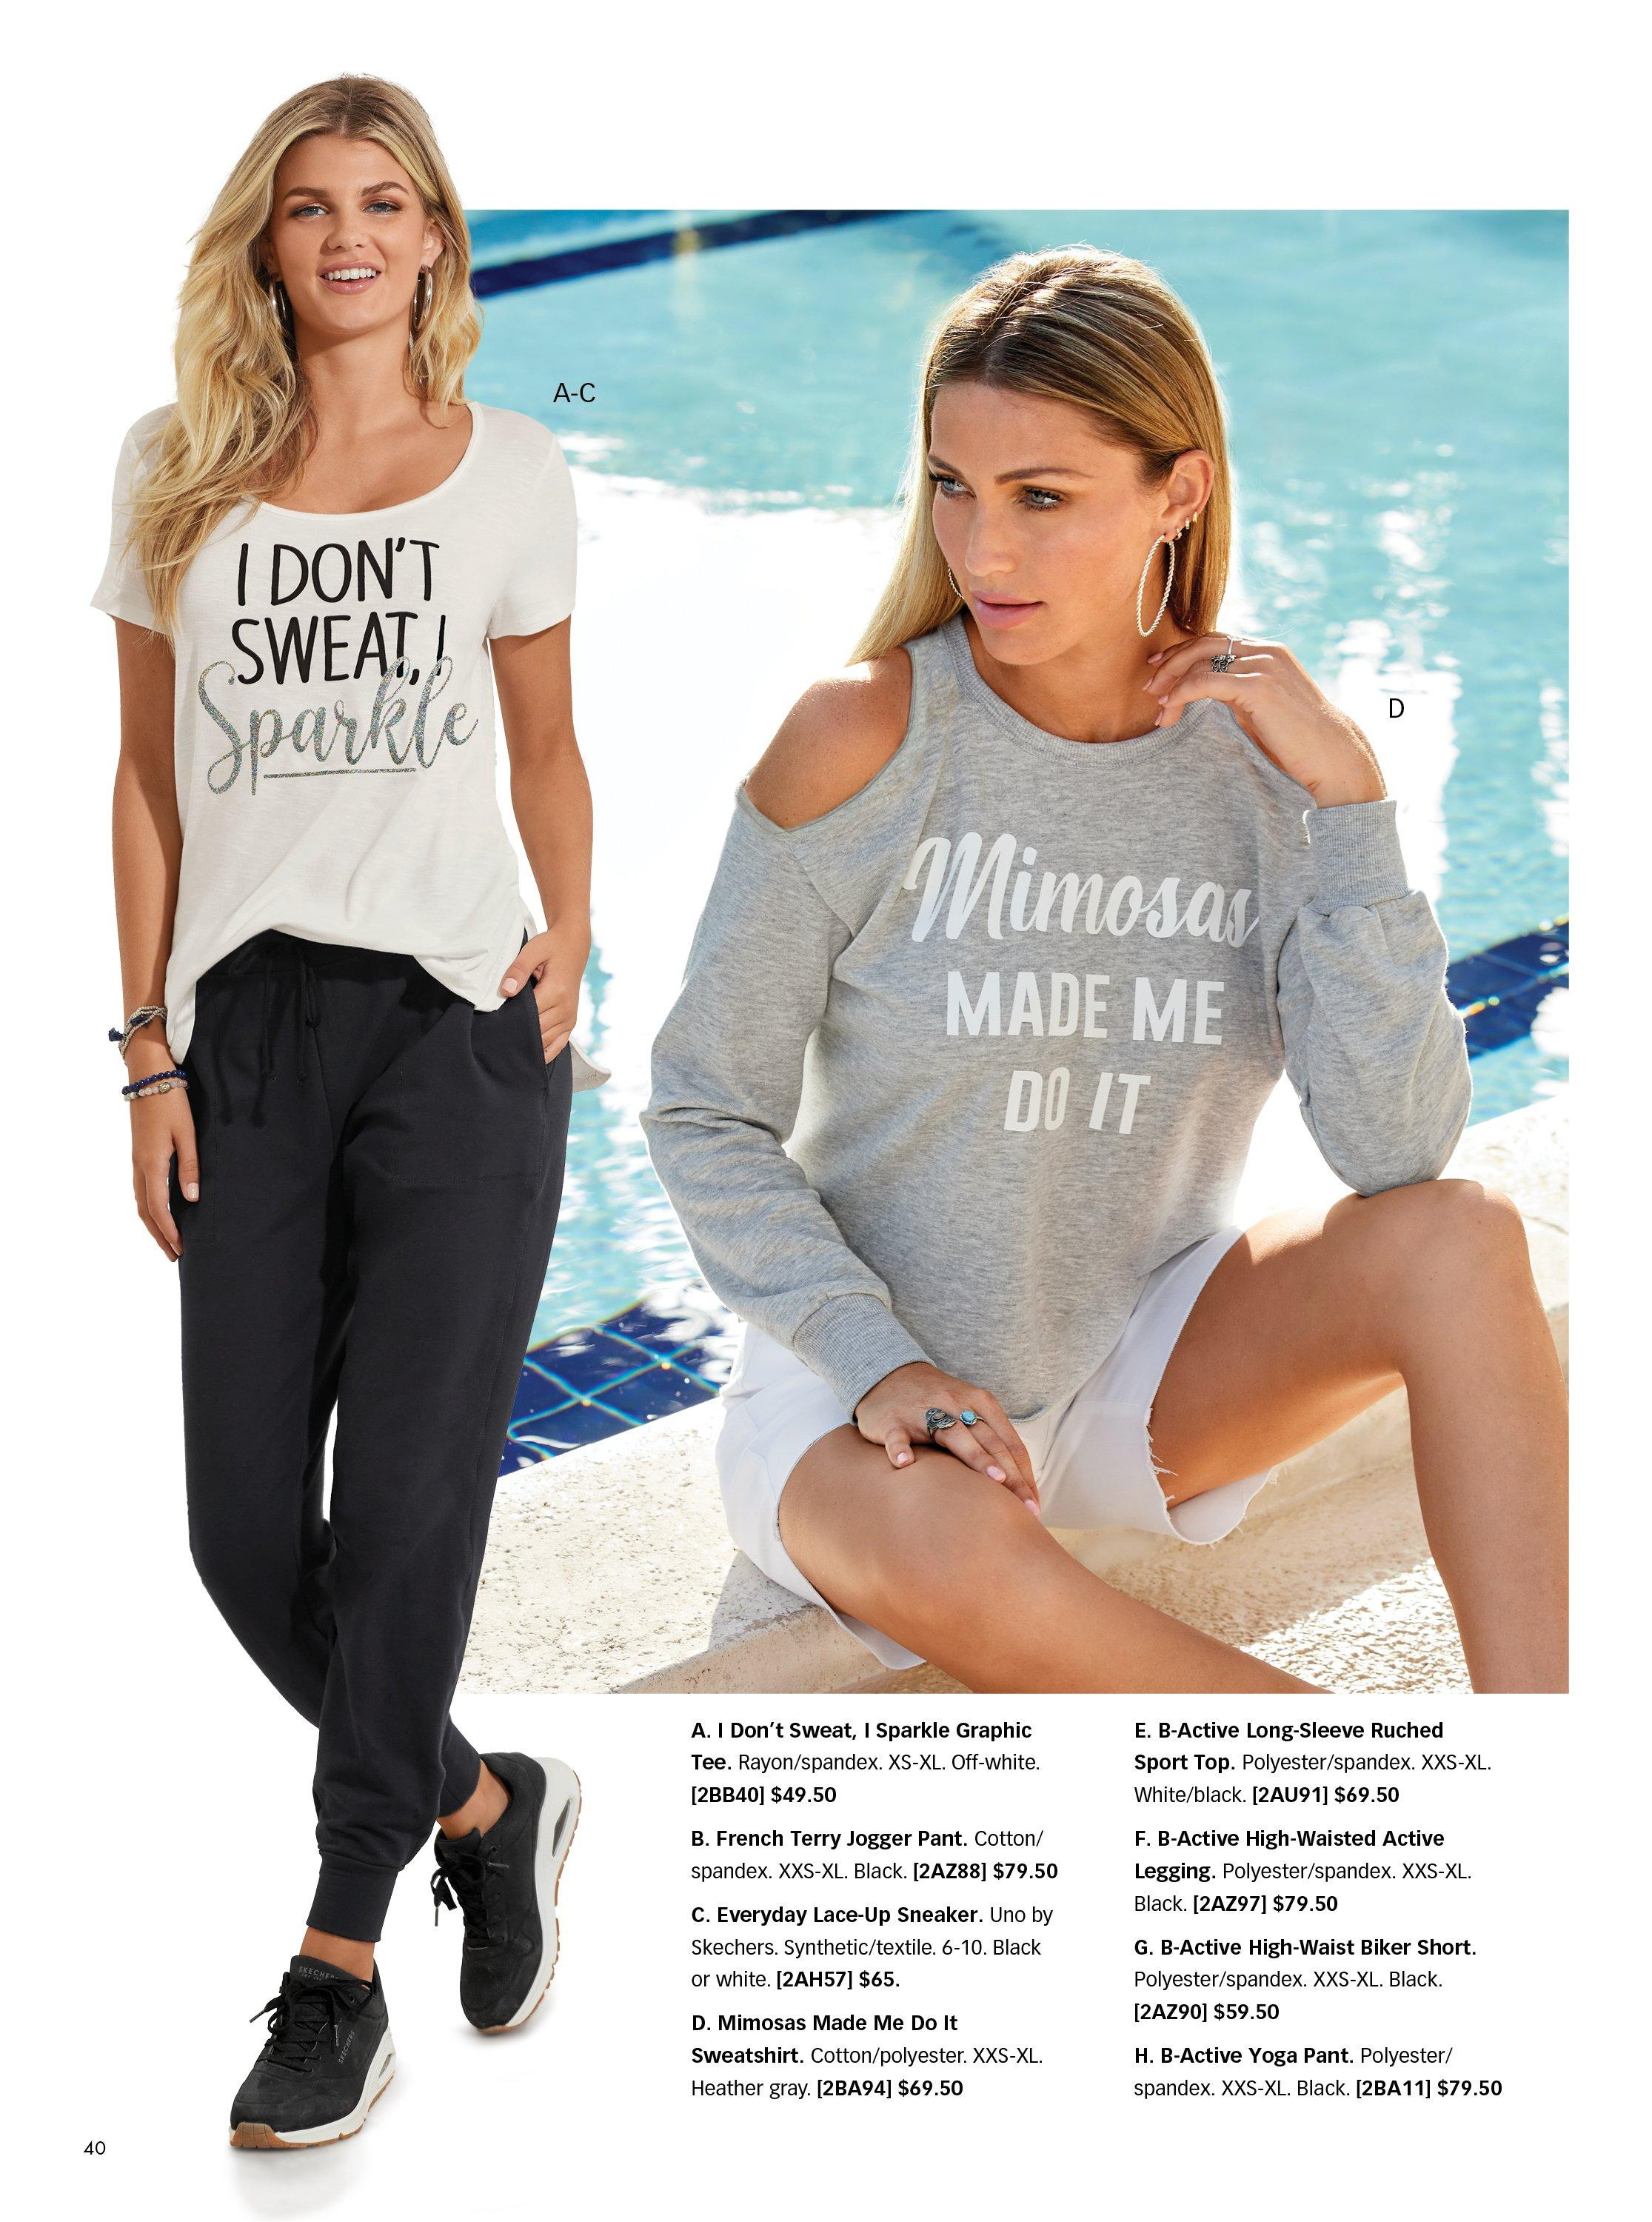 left model wearing a white short sleeve graphic tee, black joggers, and black sneakers. right model wearing a gray long-sleeve cold-shoulder graphic tee with white shorts.